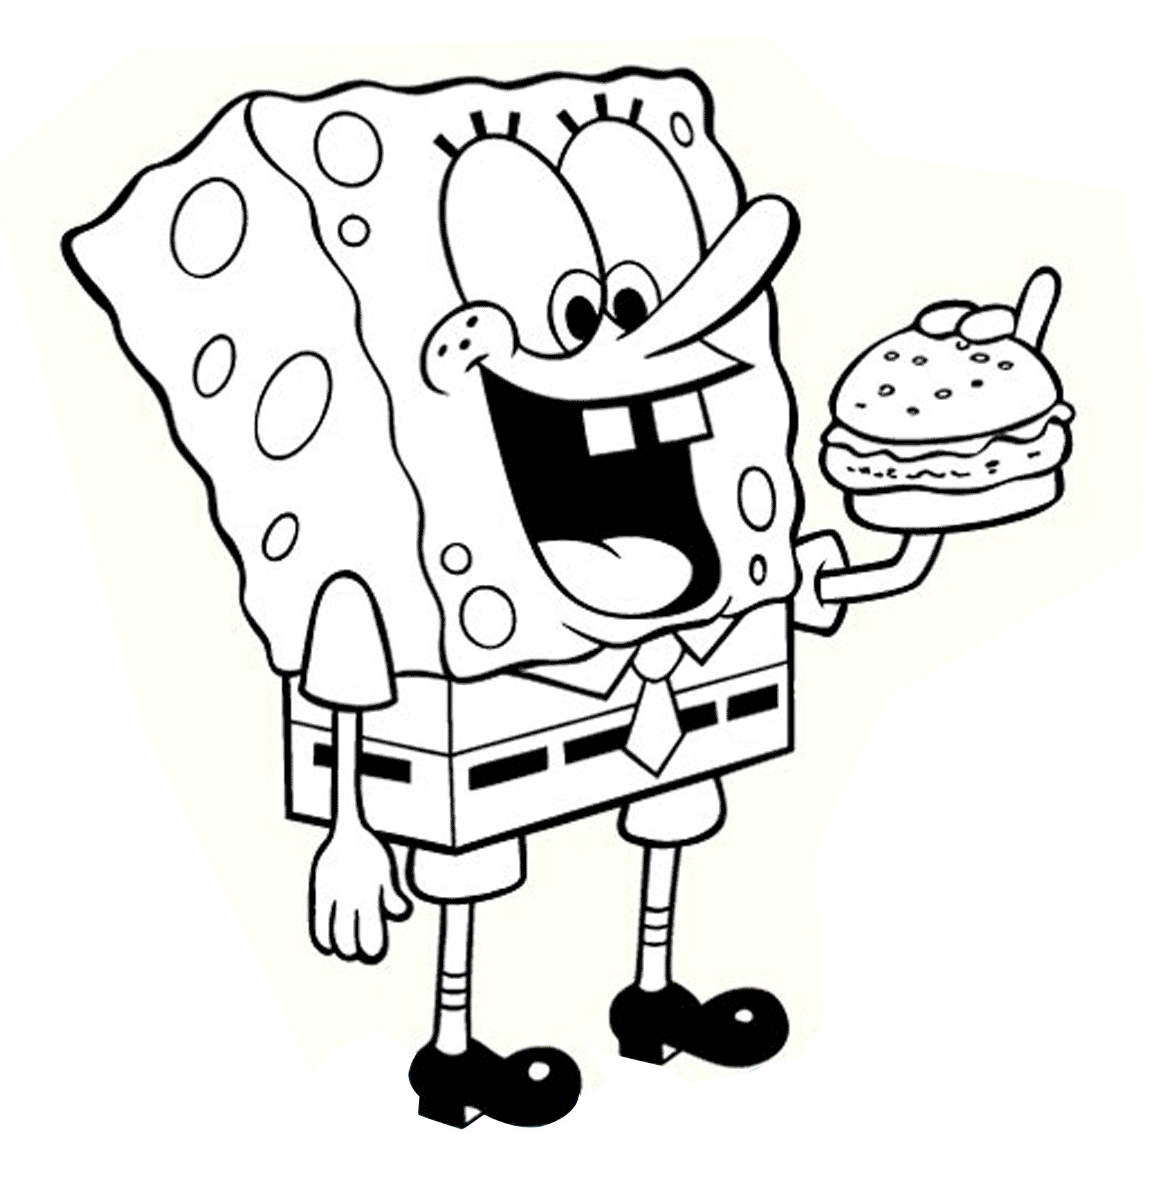 coloring pages online spongebob : Spongebob Coloring Pages To Print Spongebob Coloring Pages Free Printable Download